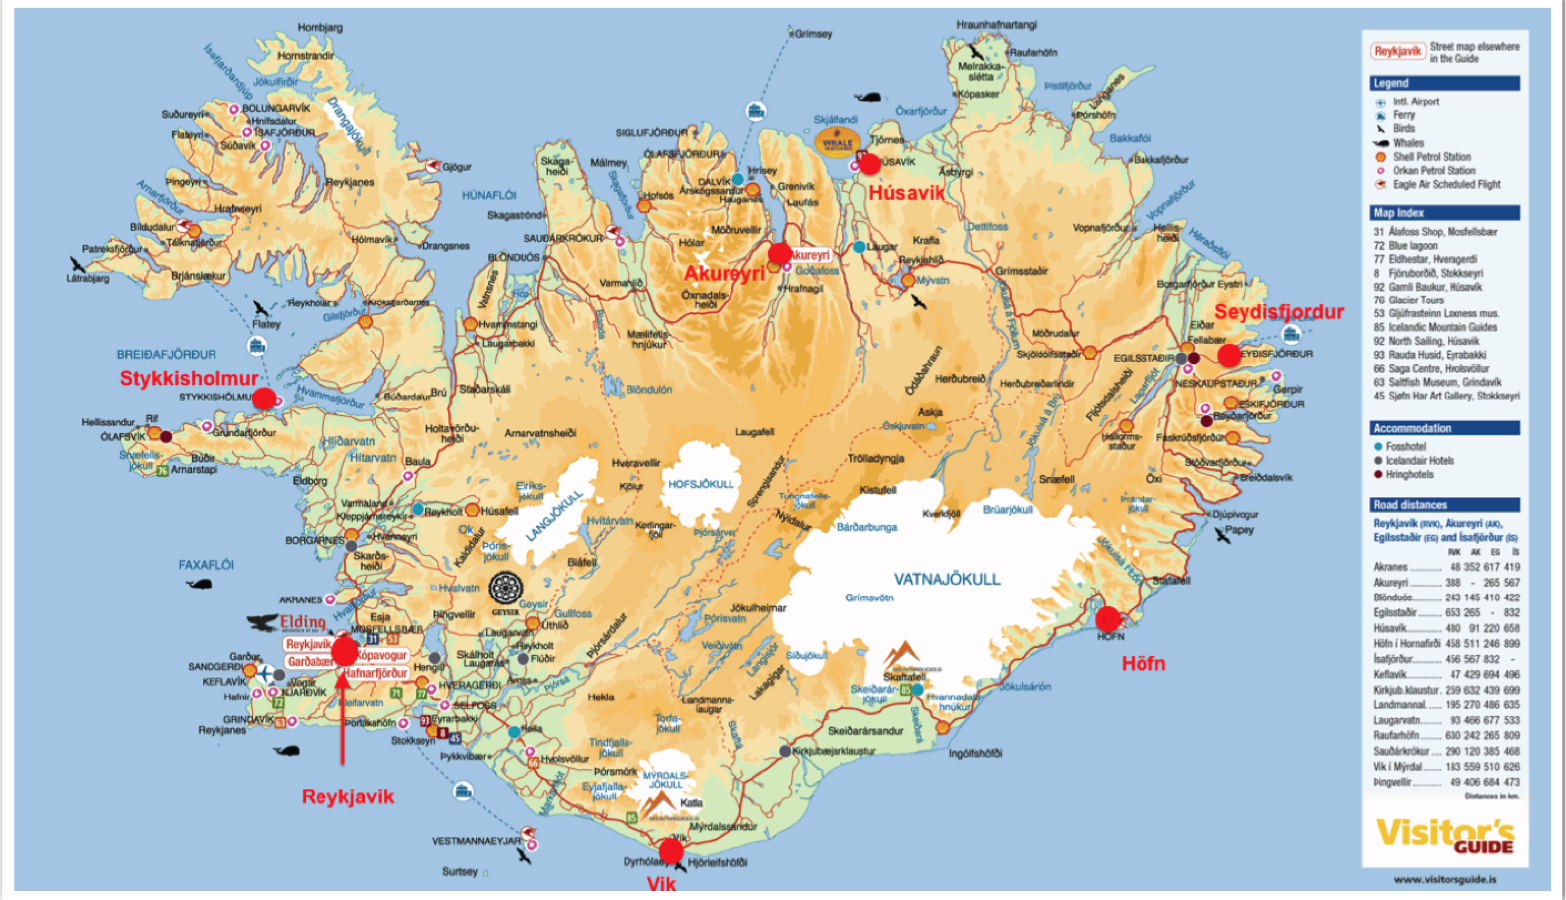 PINTI PETER ICELAND MAPS IZLANDA HARITASI – Tourist Map Of Reykjavik